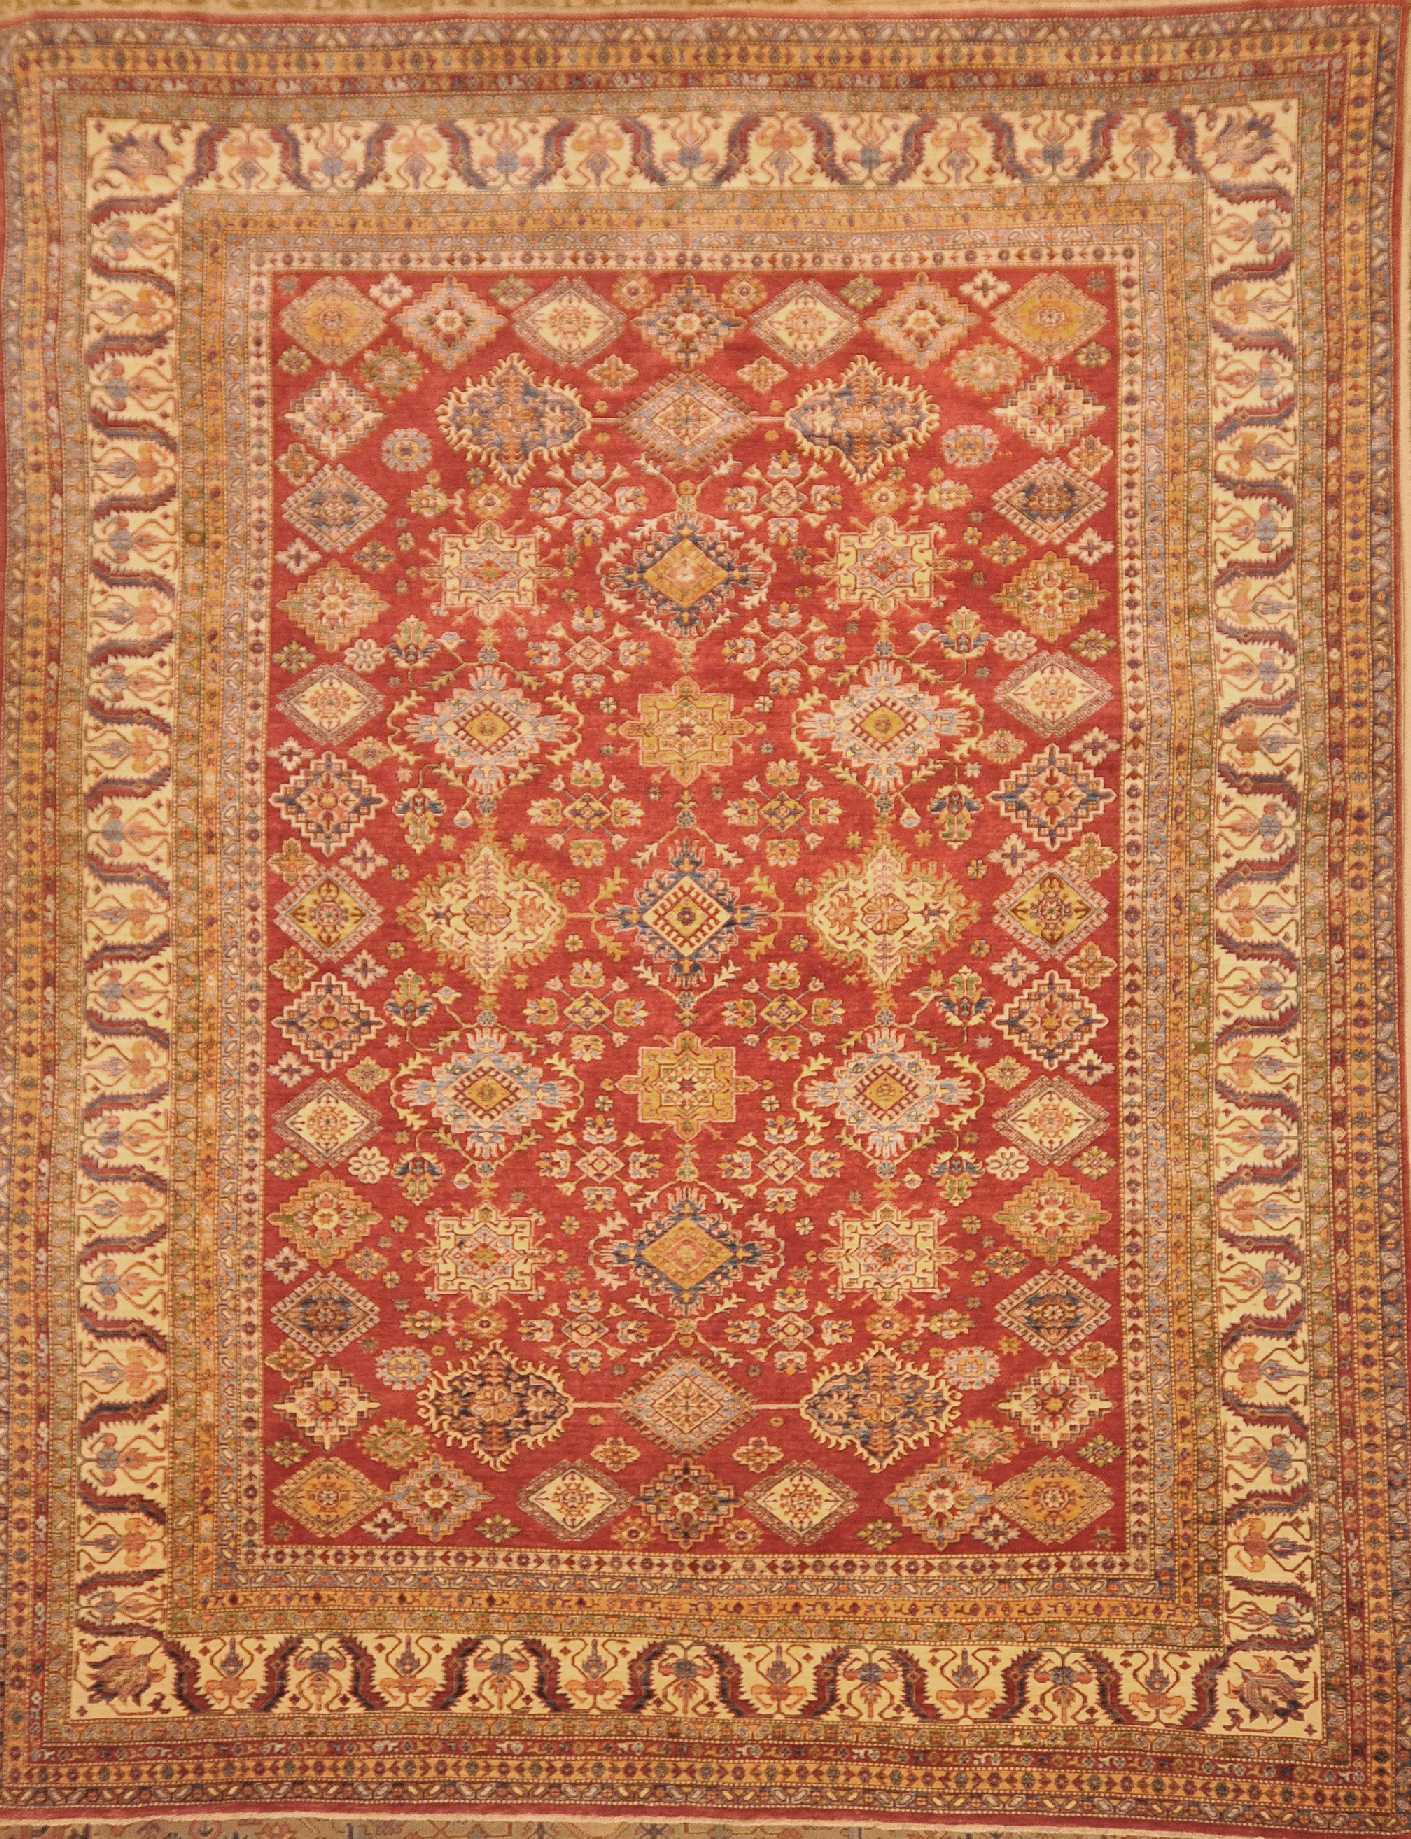 Fine Turkoman with a classic Caucasian design